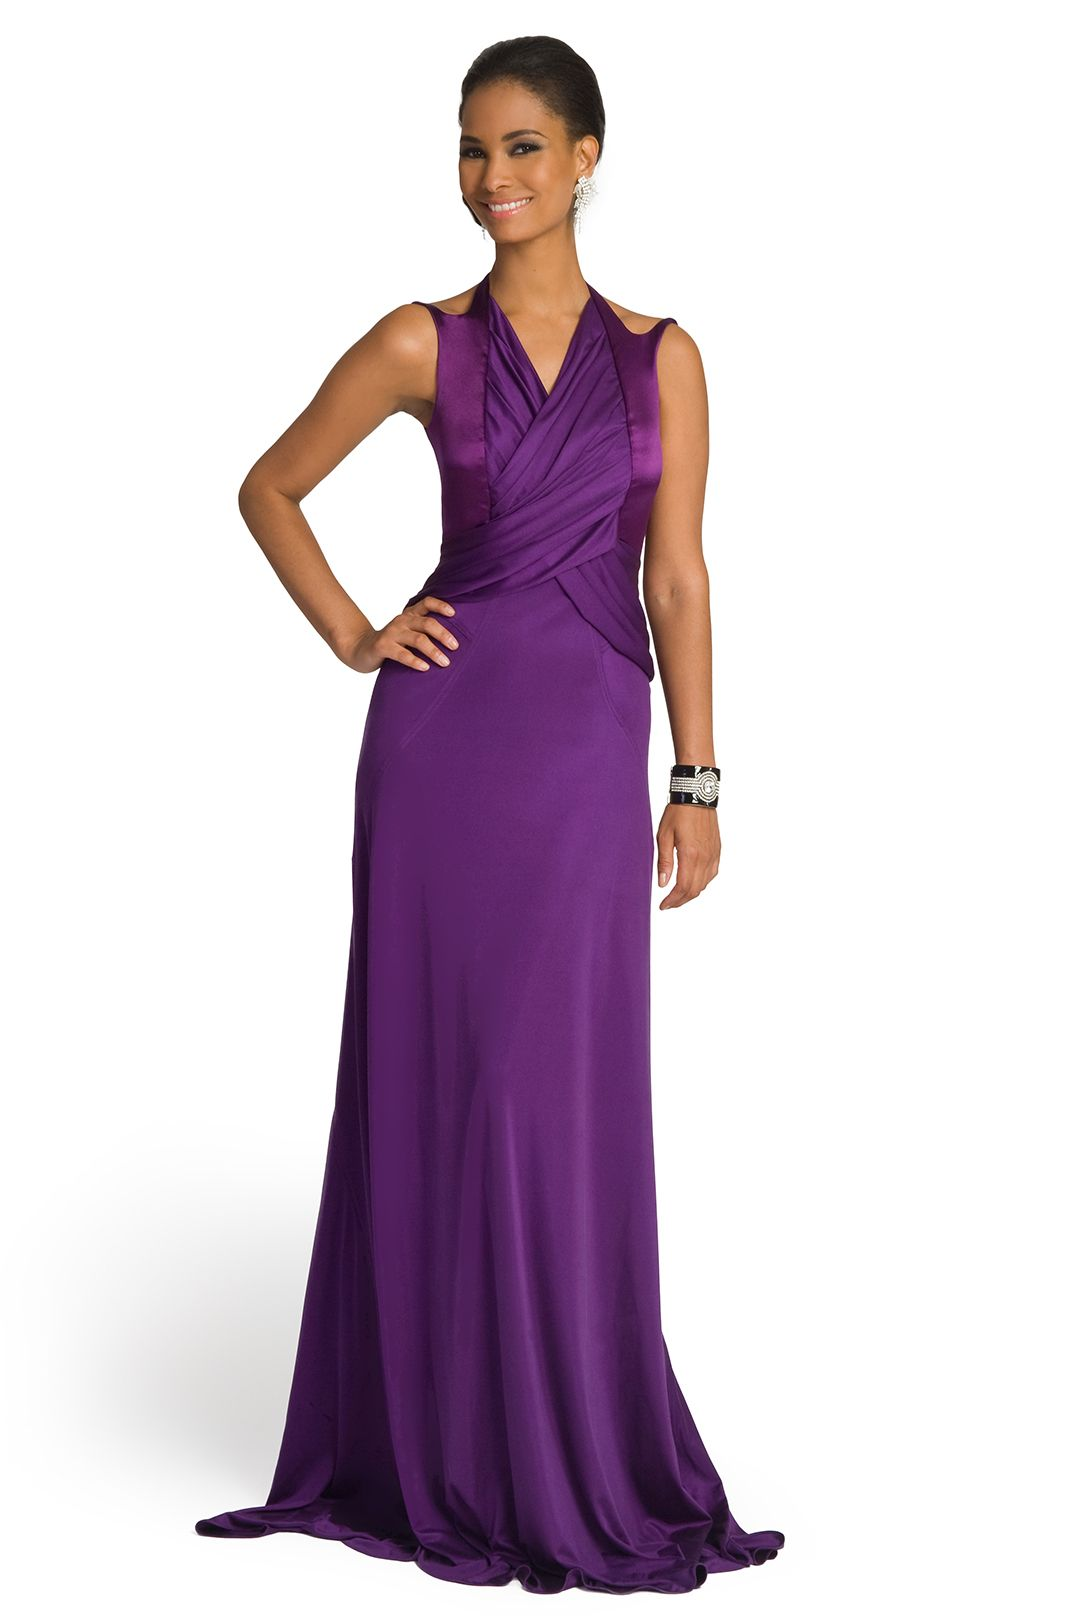 Violet Butterfly Gown | Pinterest